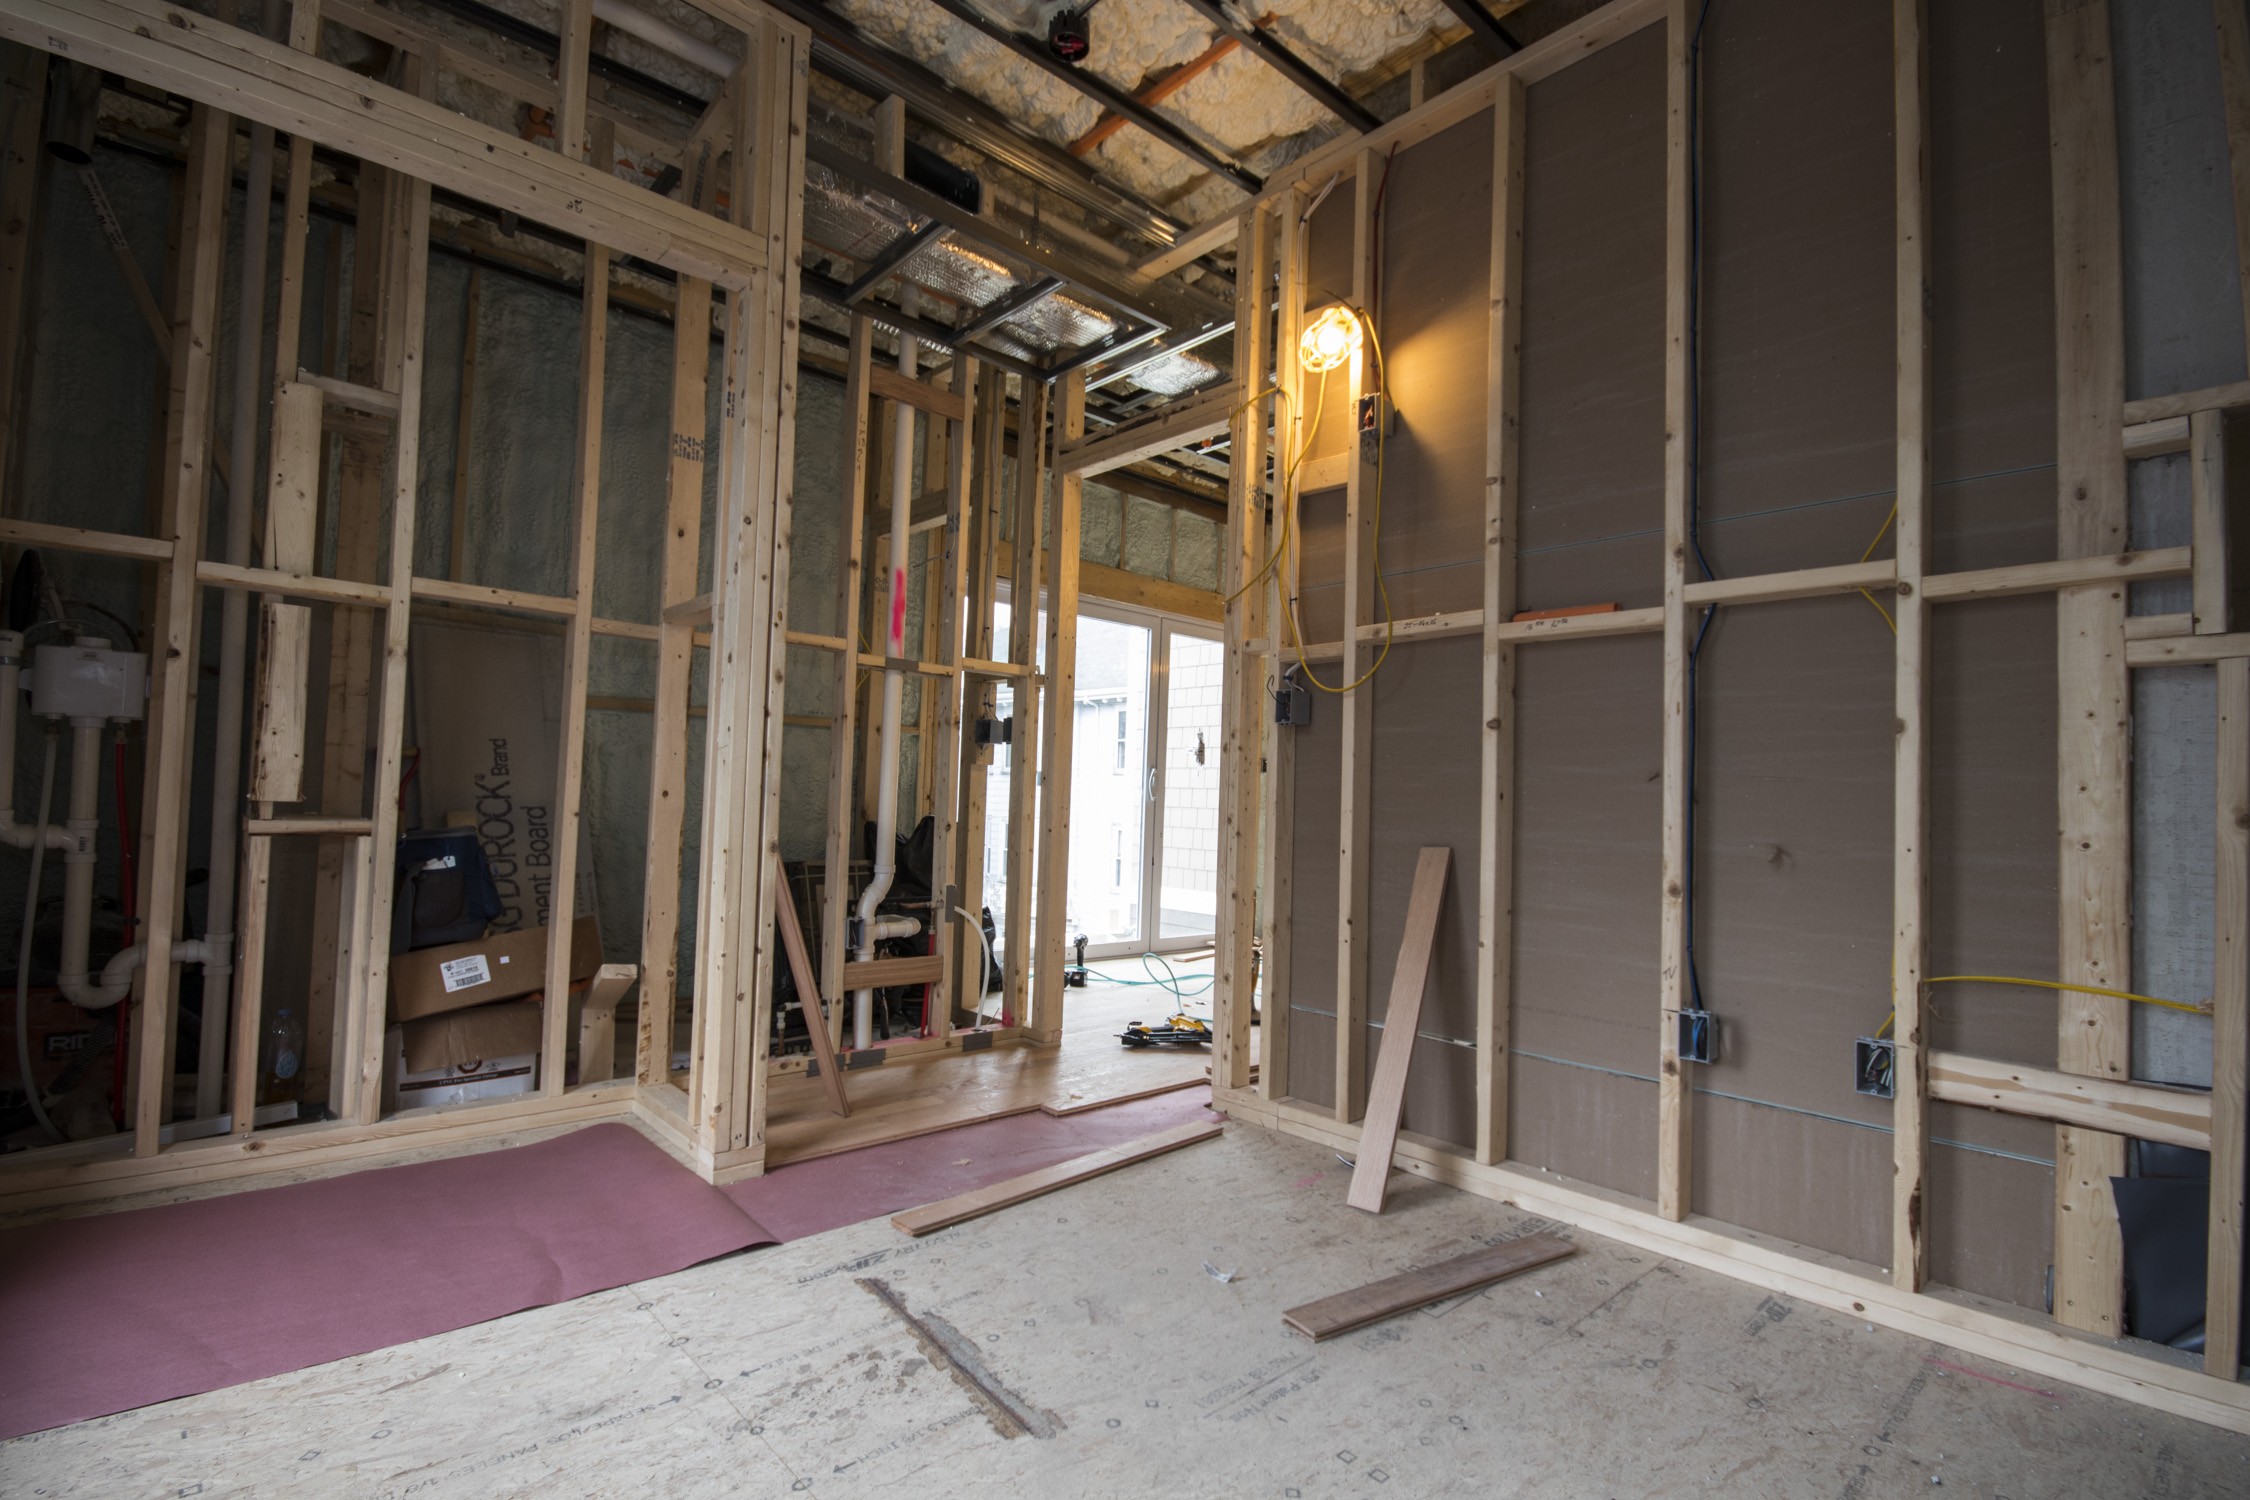 83 parker street home renovation boston general contractor_64